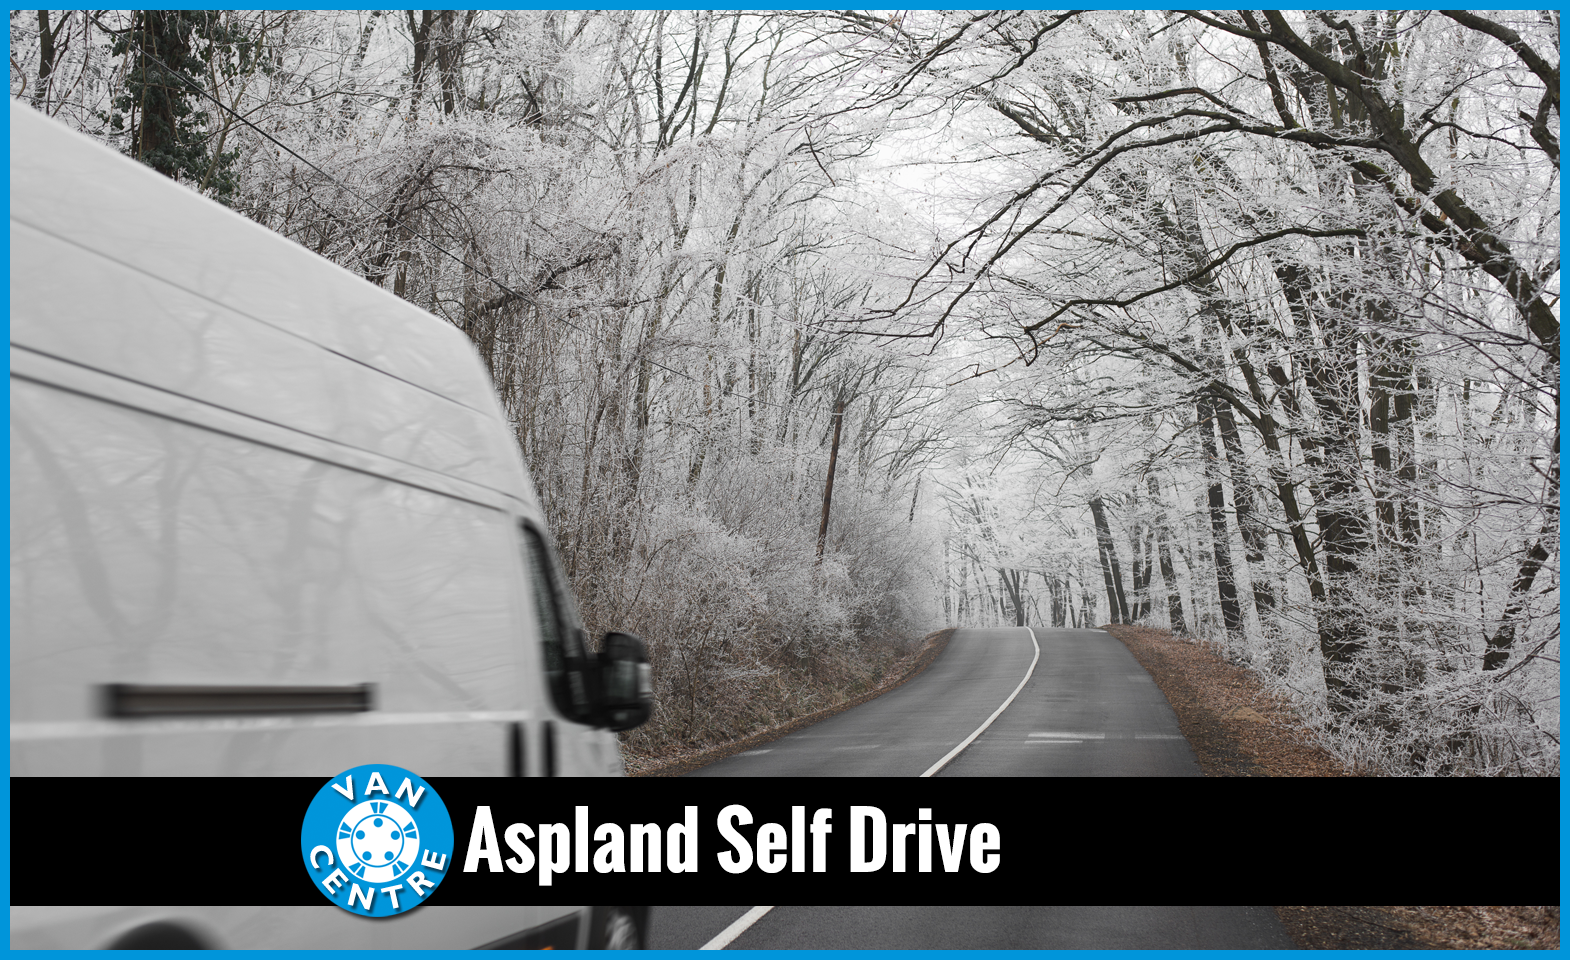 Top tips to drive safely this winter | Aspland Self Drive, Norwich